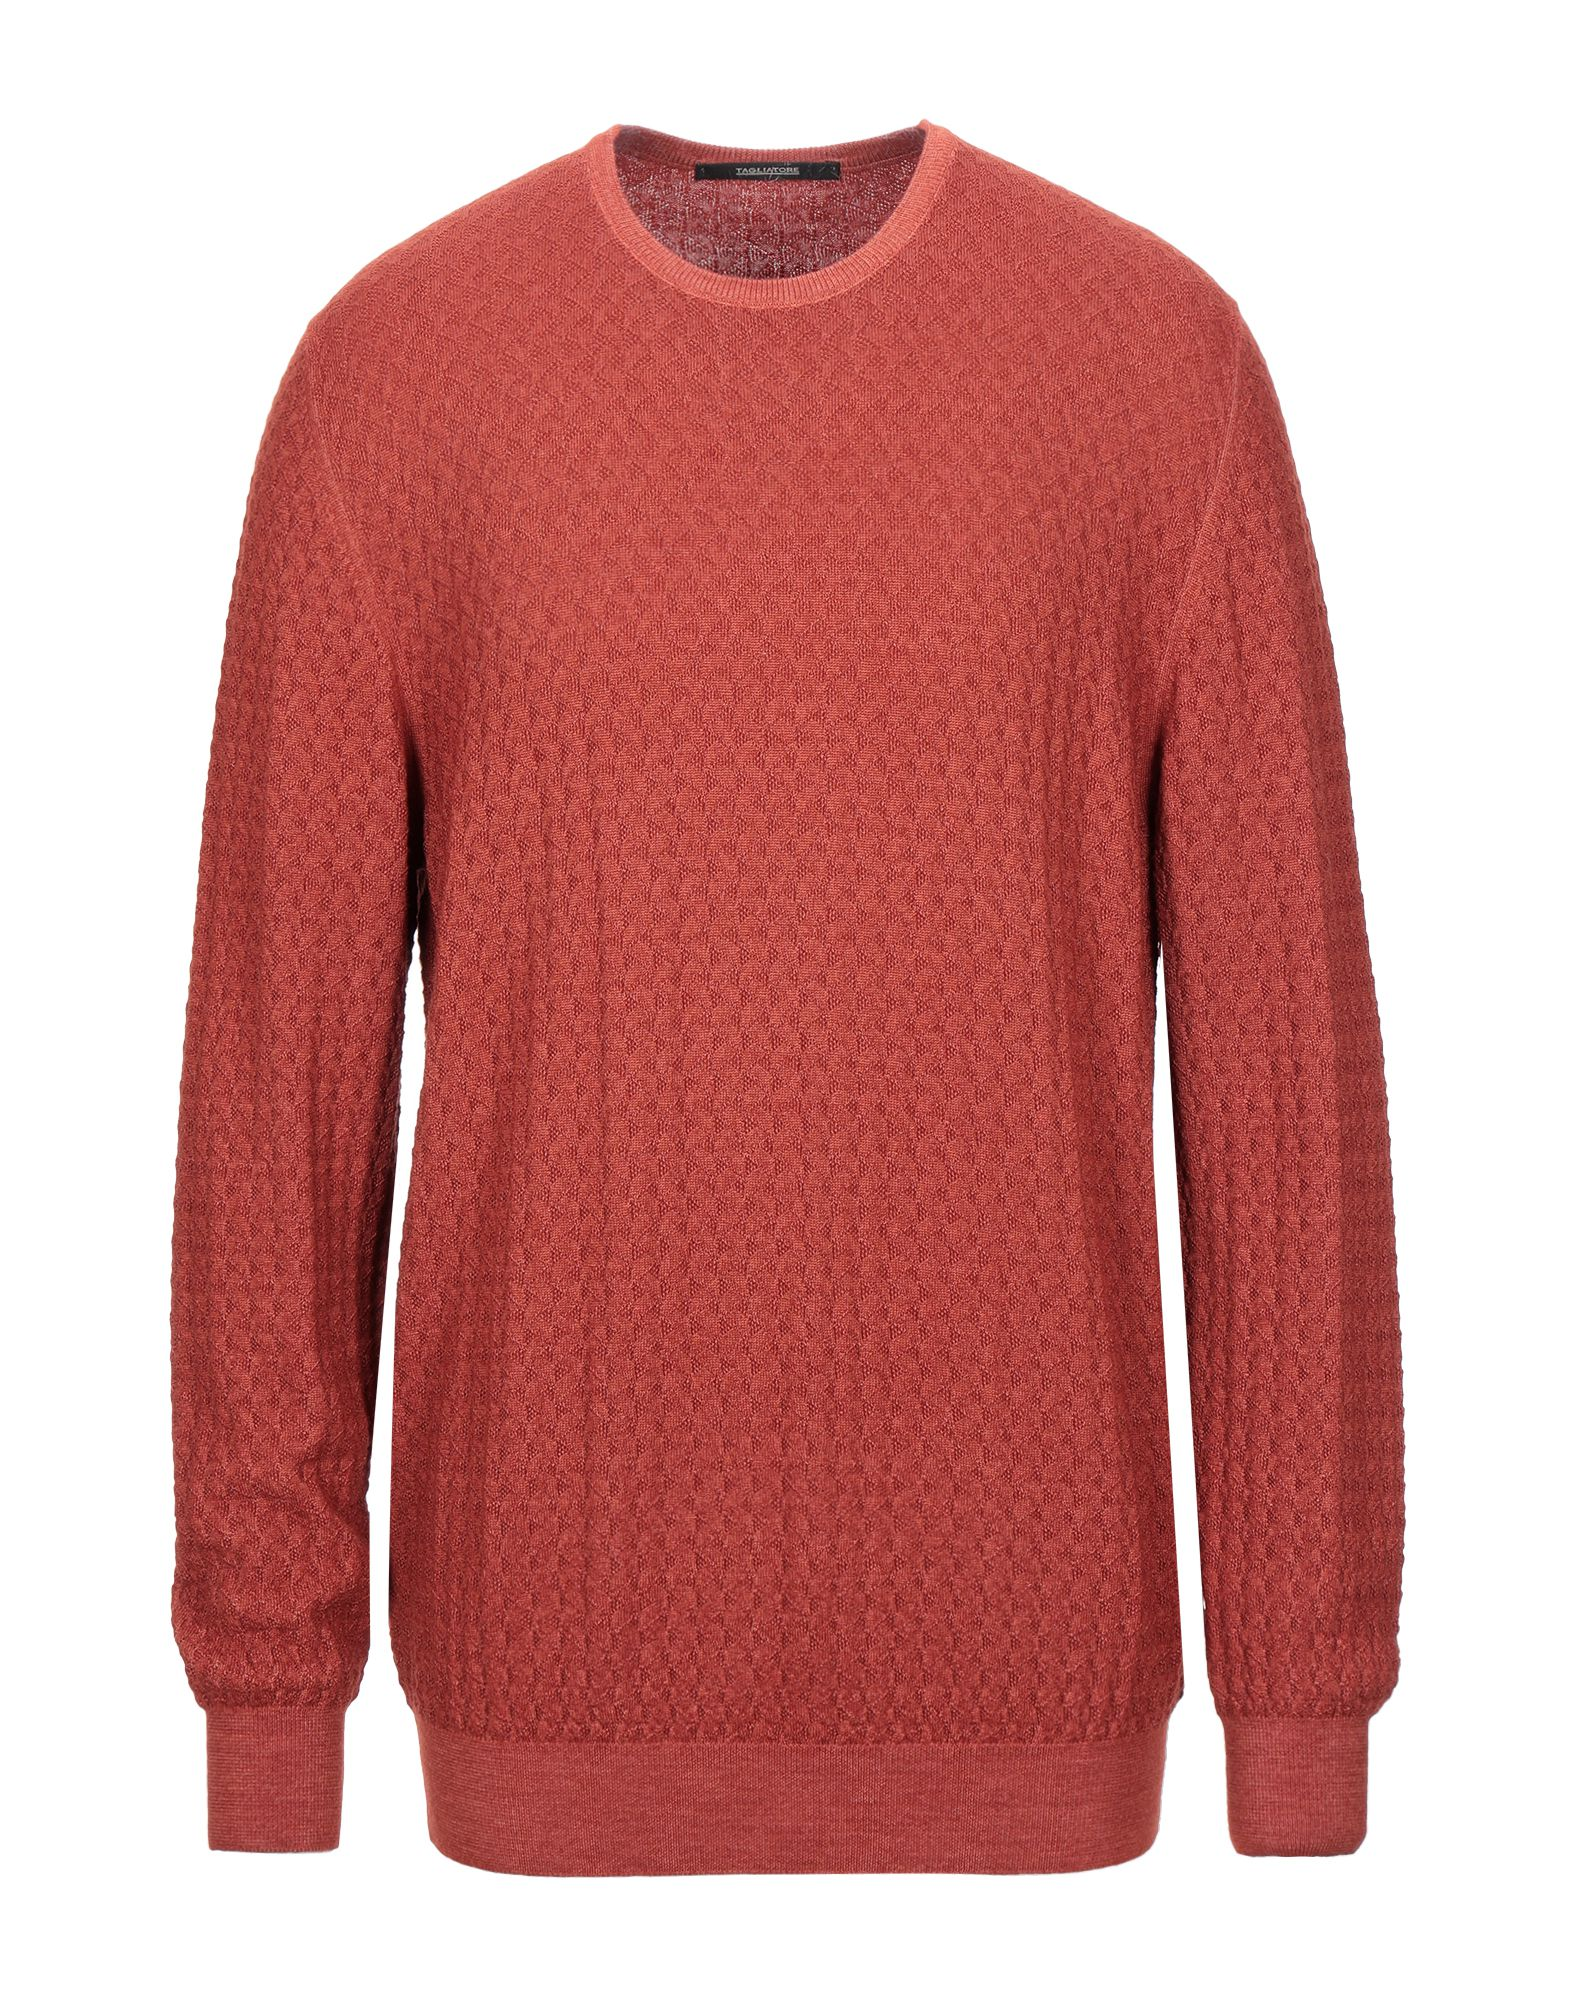 TAGLIATORE Sweaters. knitted, no appliqués, lightweight knit, round collar, basic solid color, long sleeves, no pockets. 100% Virgin Wool